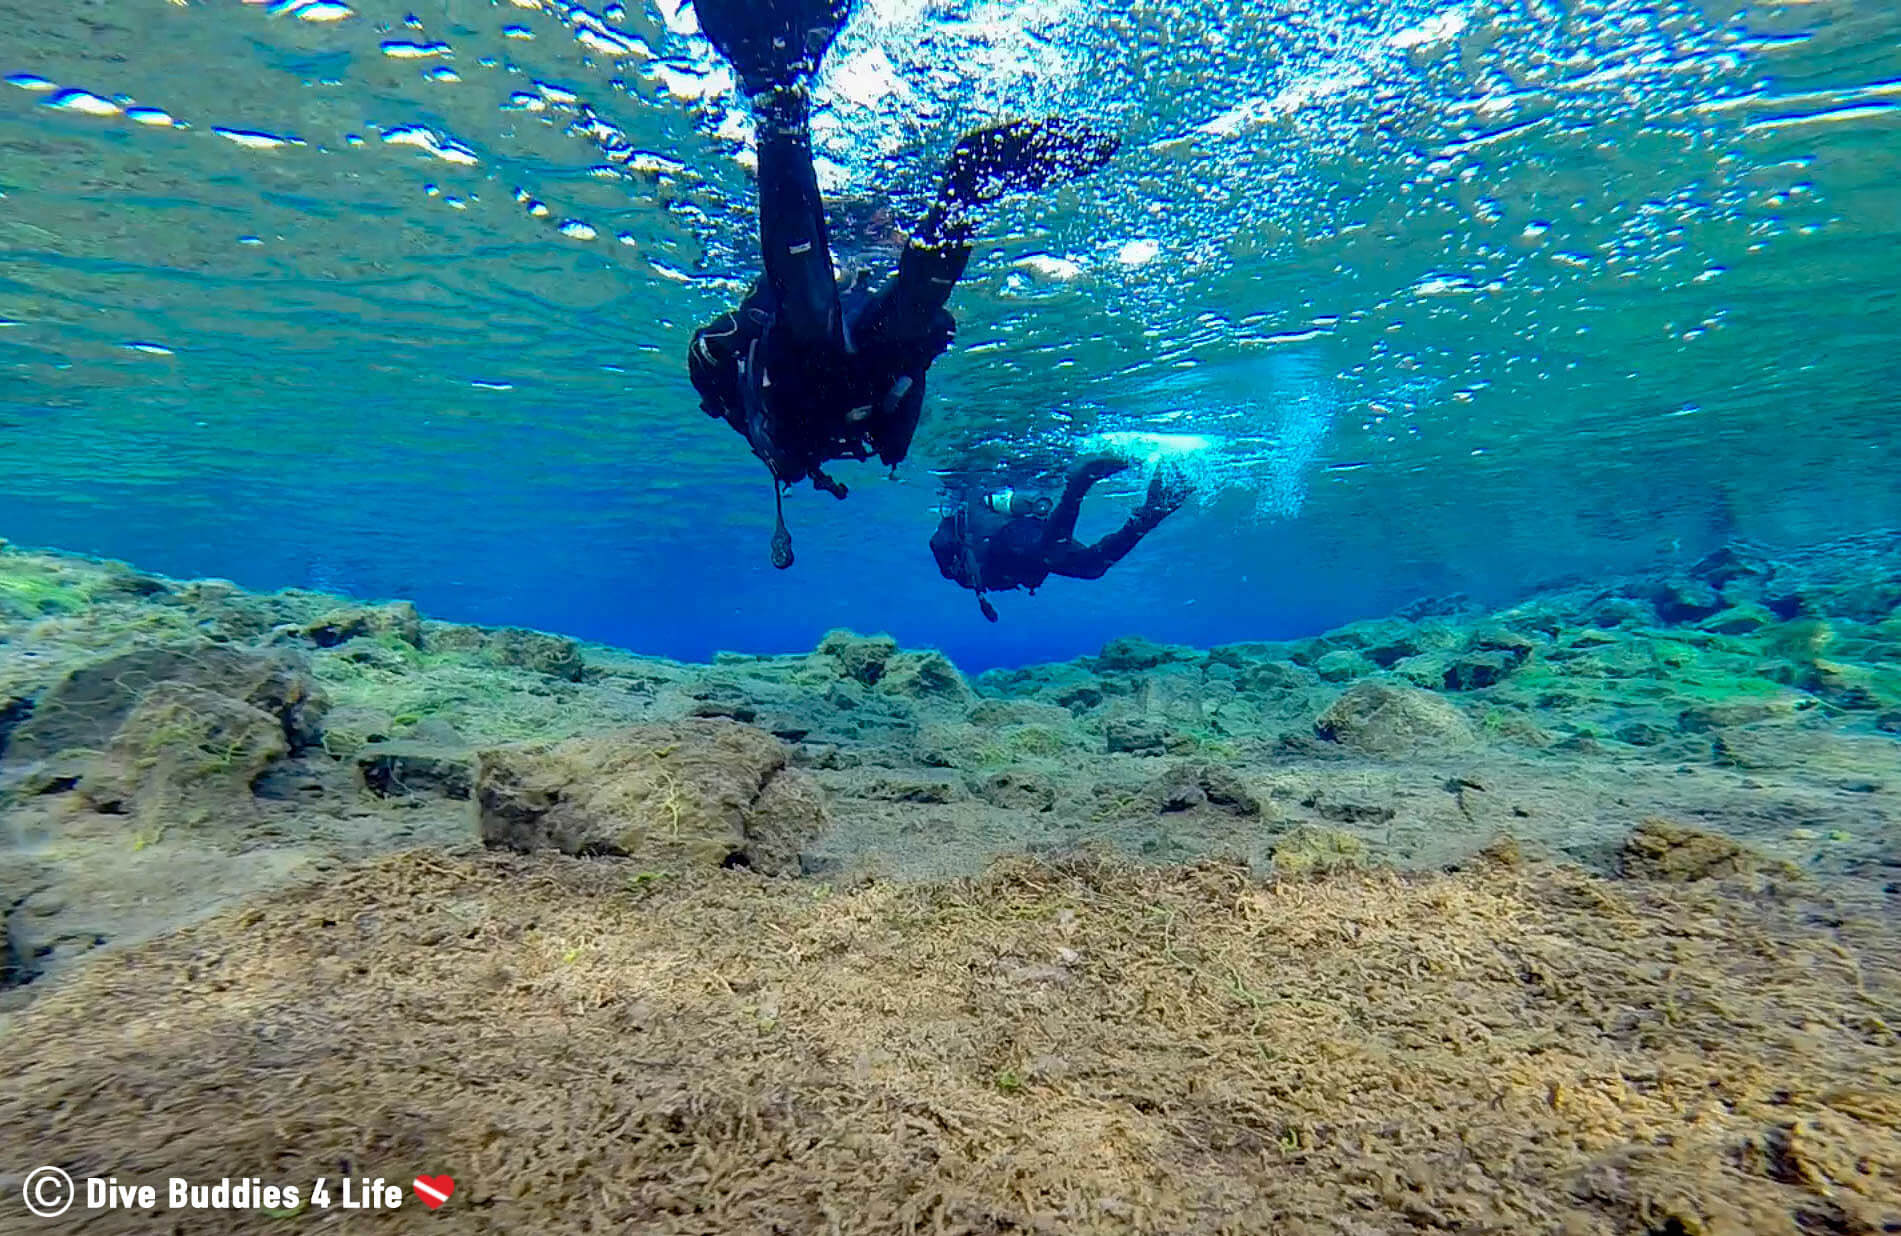 A Pair Of Scuba Divers Finning Over The Muddy Bottom Of The Clearest Dive Site In The World, The Silfra